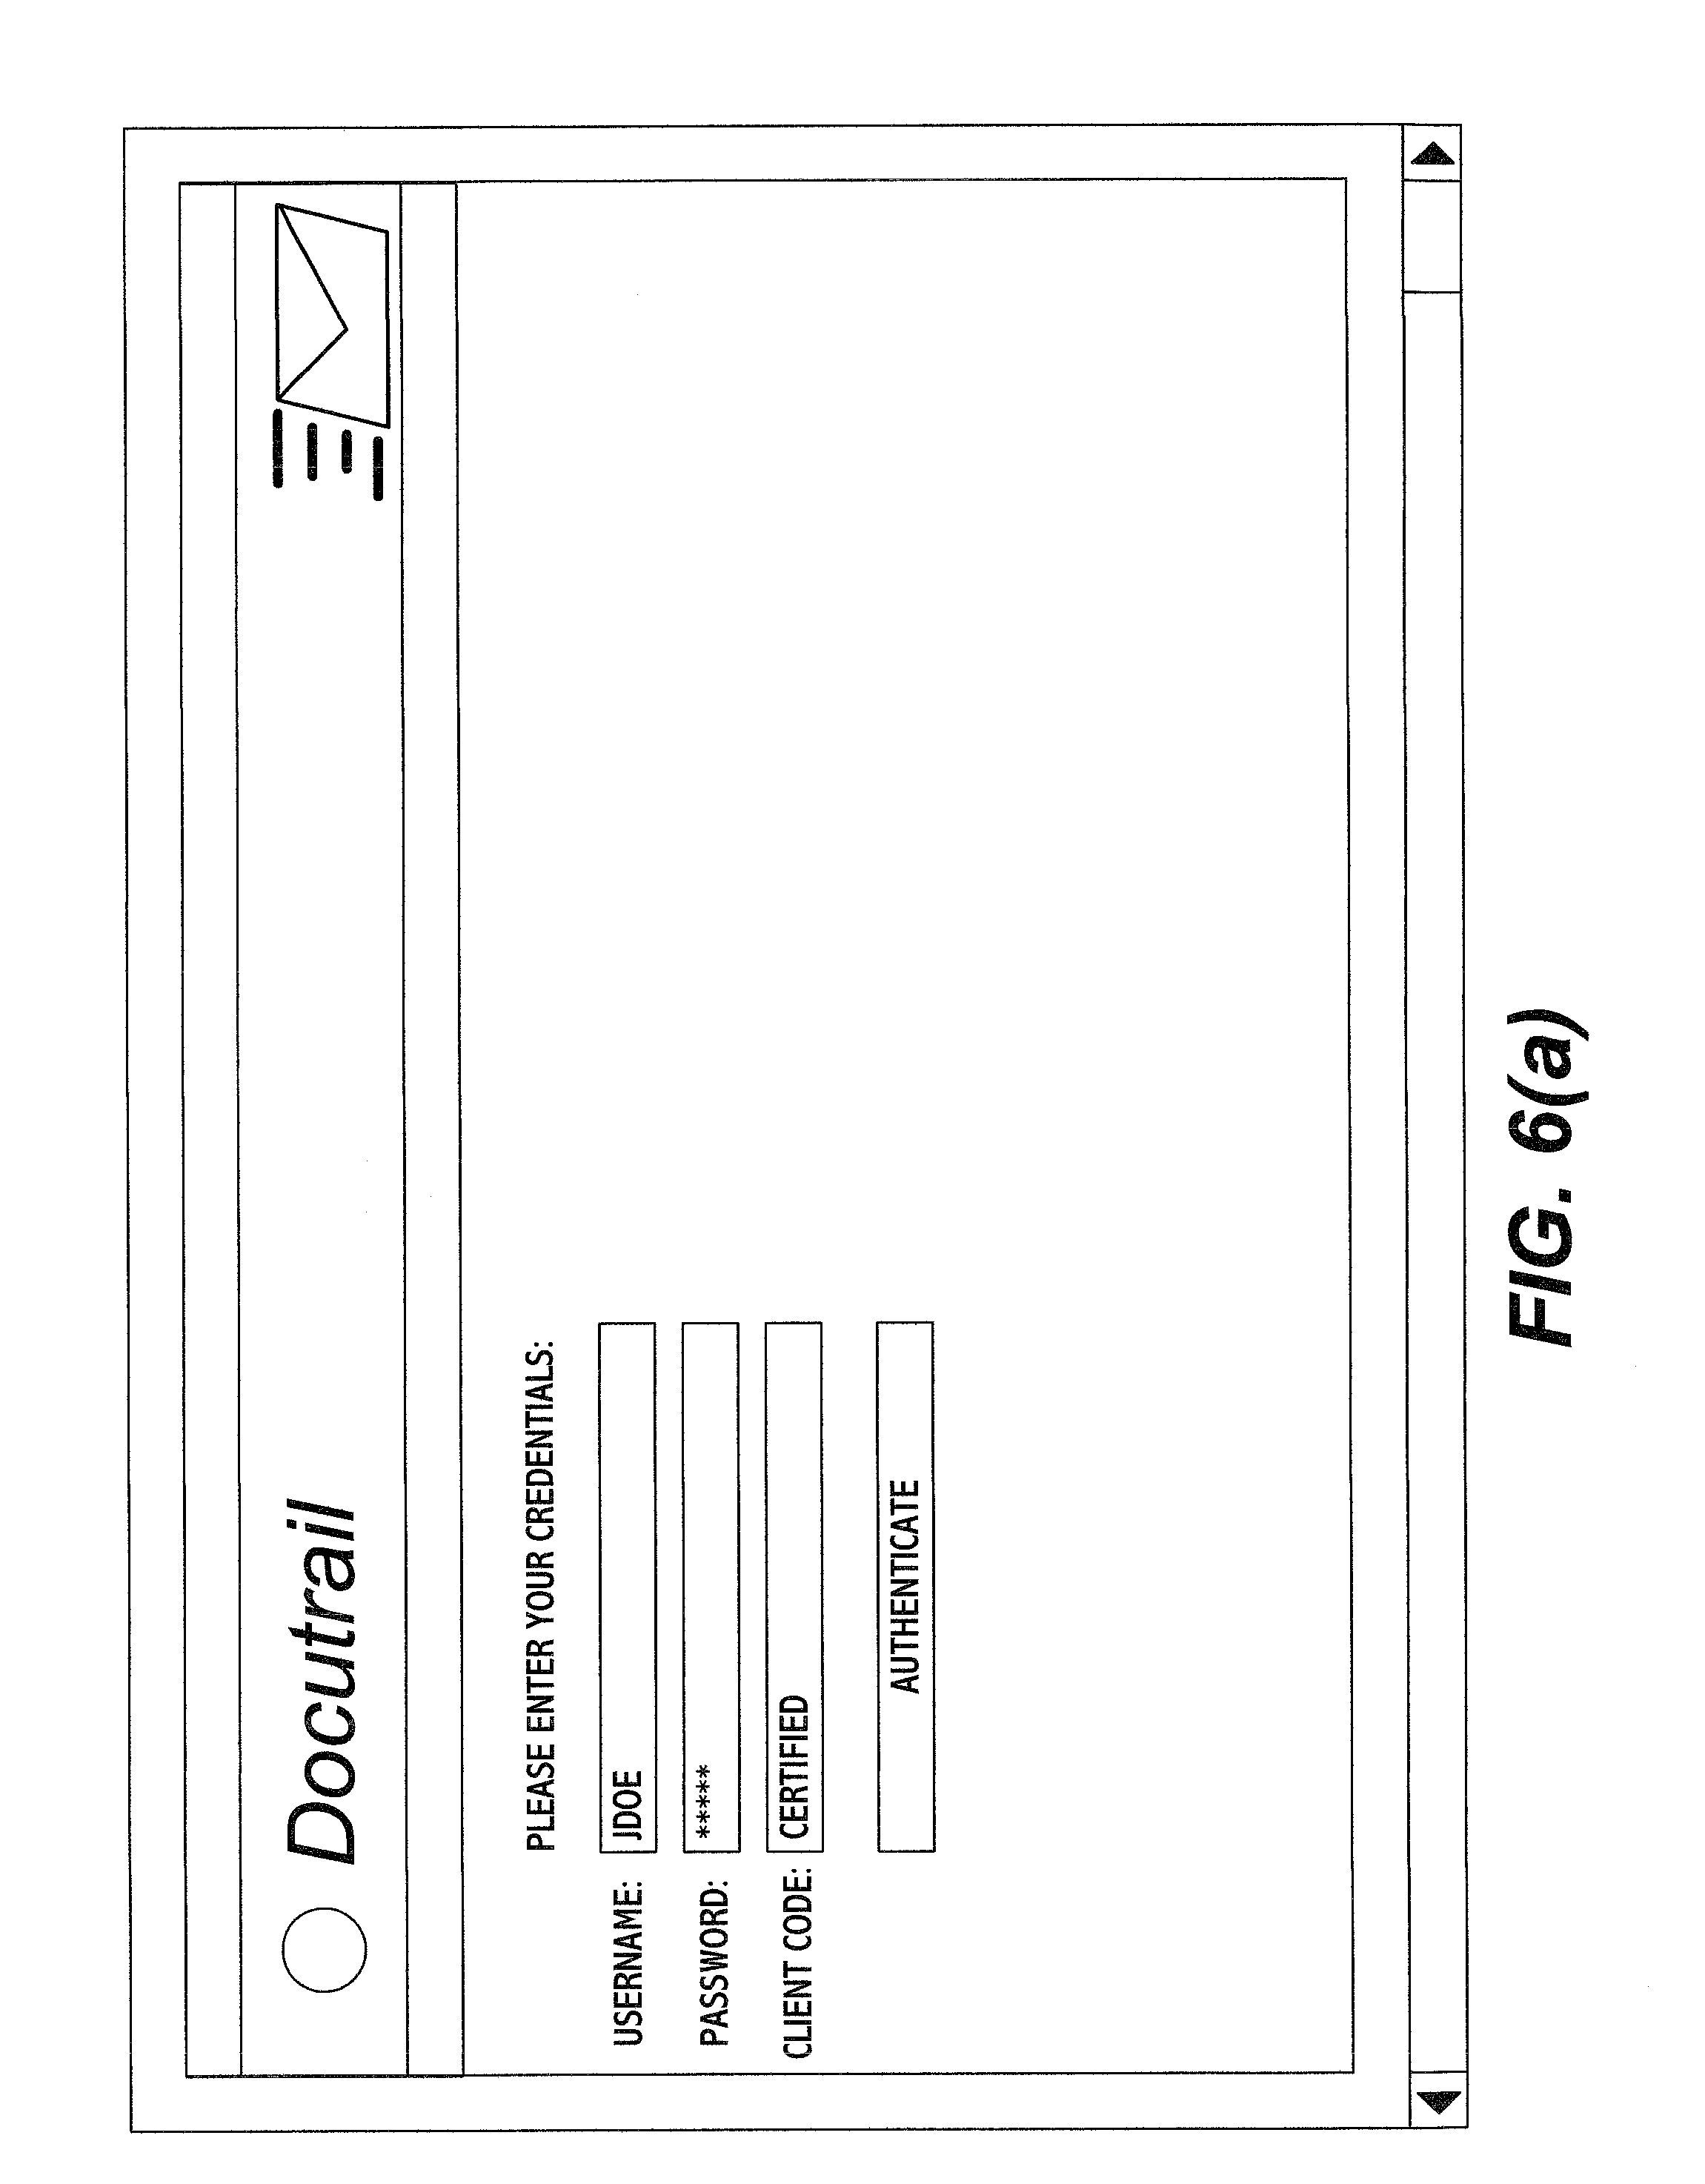 Donation Receipt Form Template Excel Patent Us  Outbound Document System And Method  Google  Audi Q5 Invoice Price Pdf with Gift Receipt Patent Drawing Cash Sale Receipt Template Word Pdf